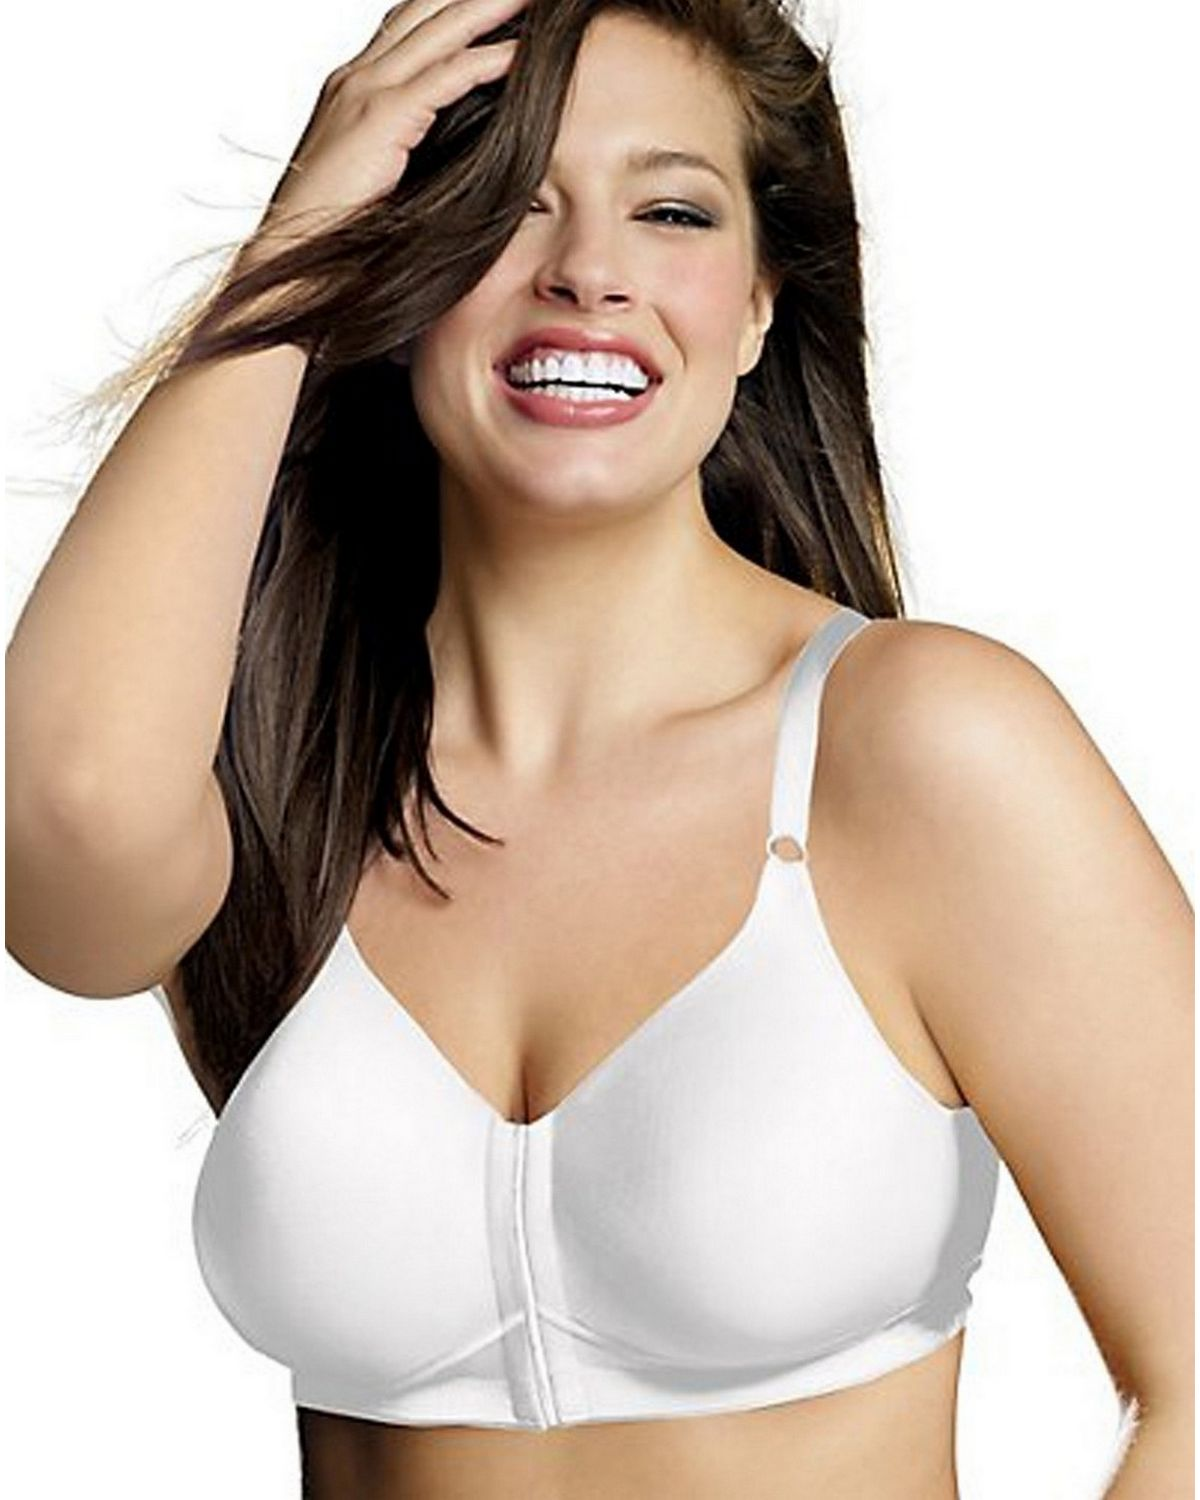 Playtex 4930 Sensationally Sleek Wirefree Bra - White - 40DD 4930